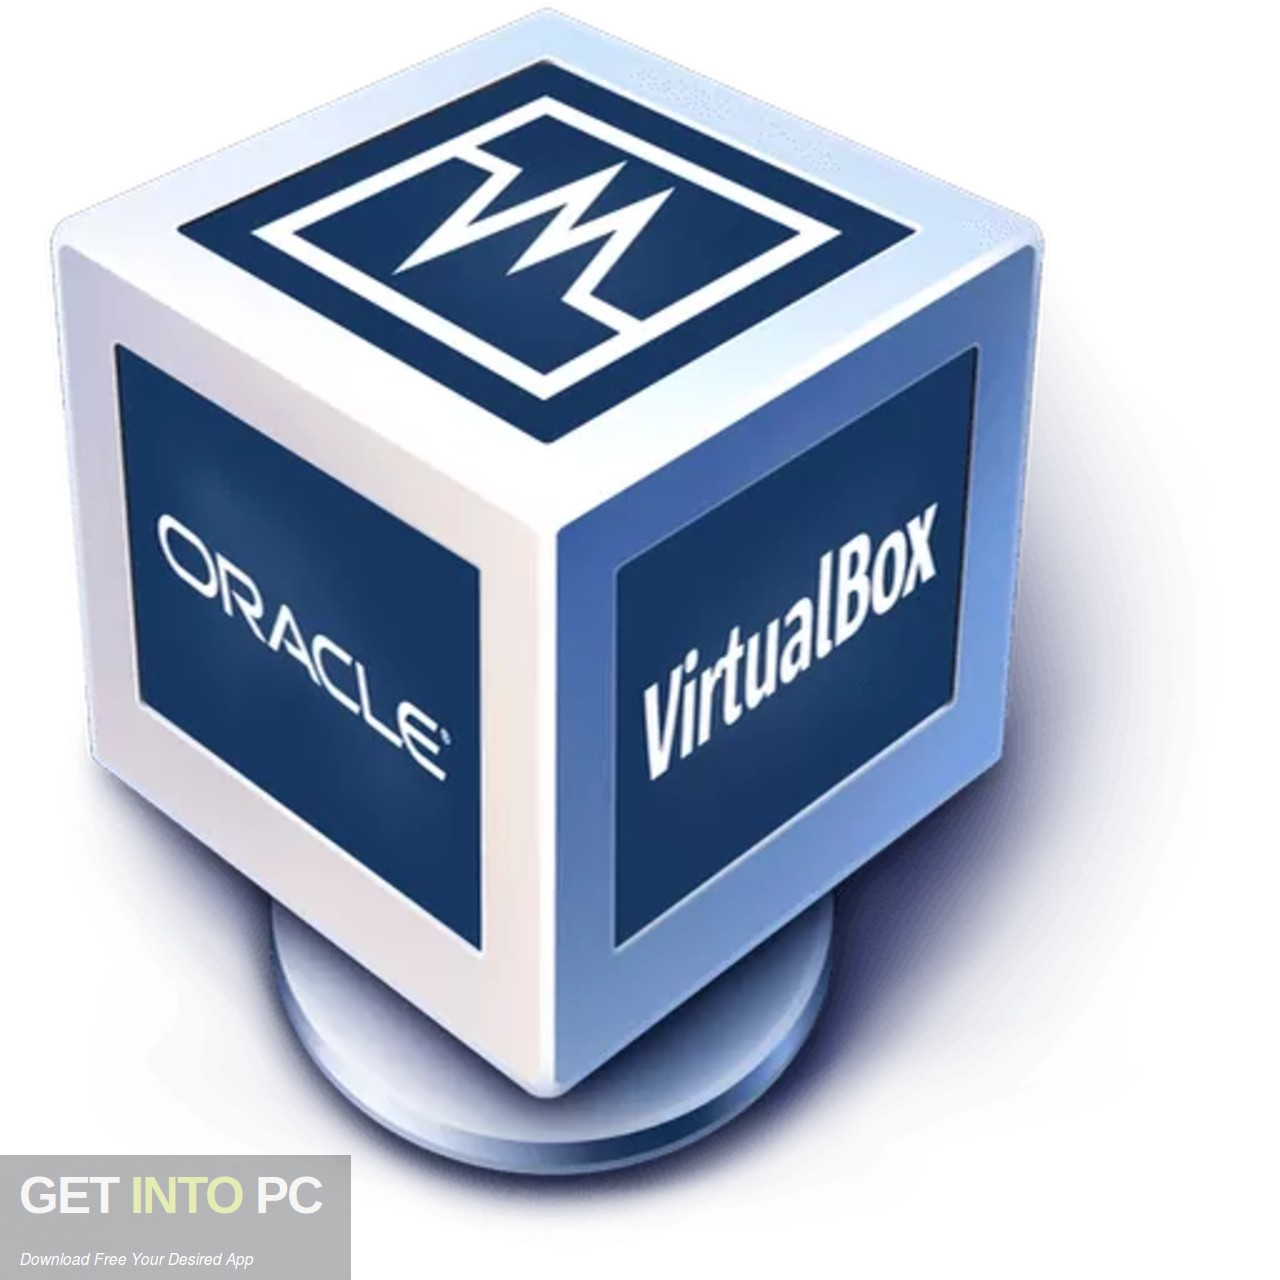 VirtualBox 2020 Free Download PcHippo